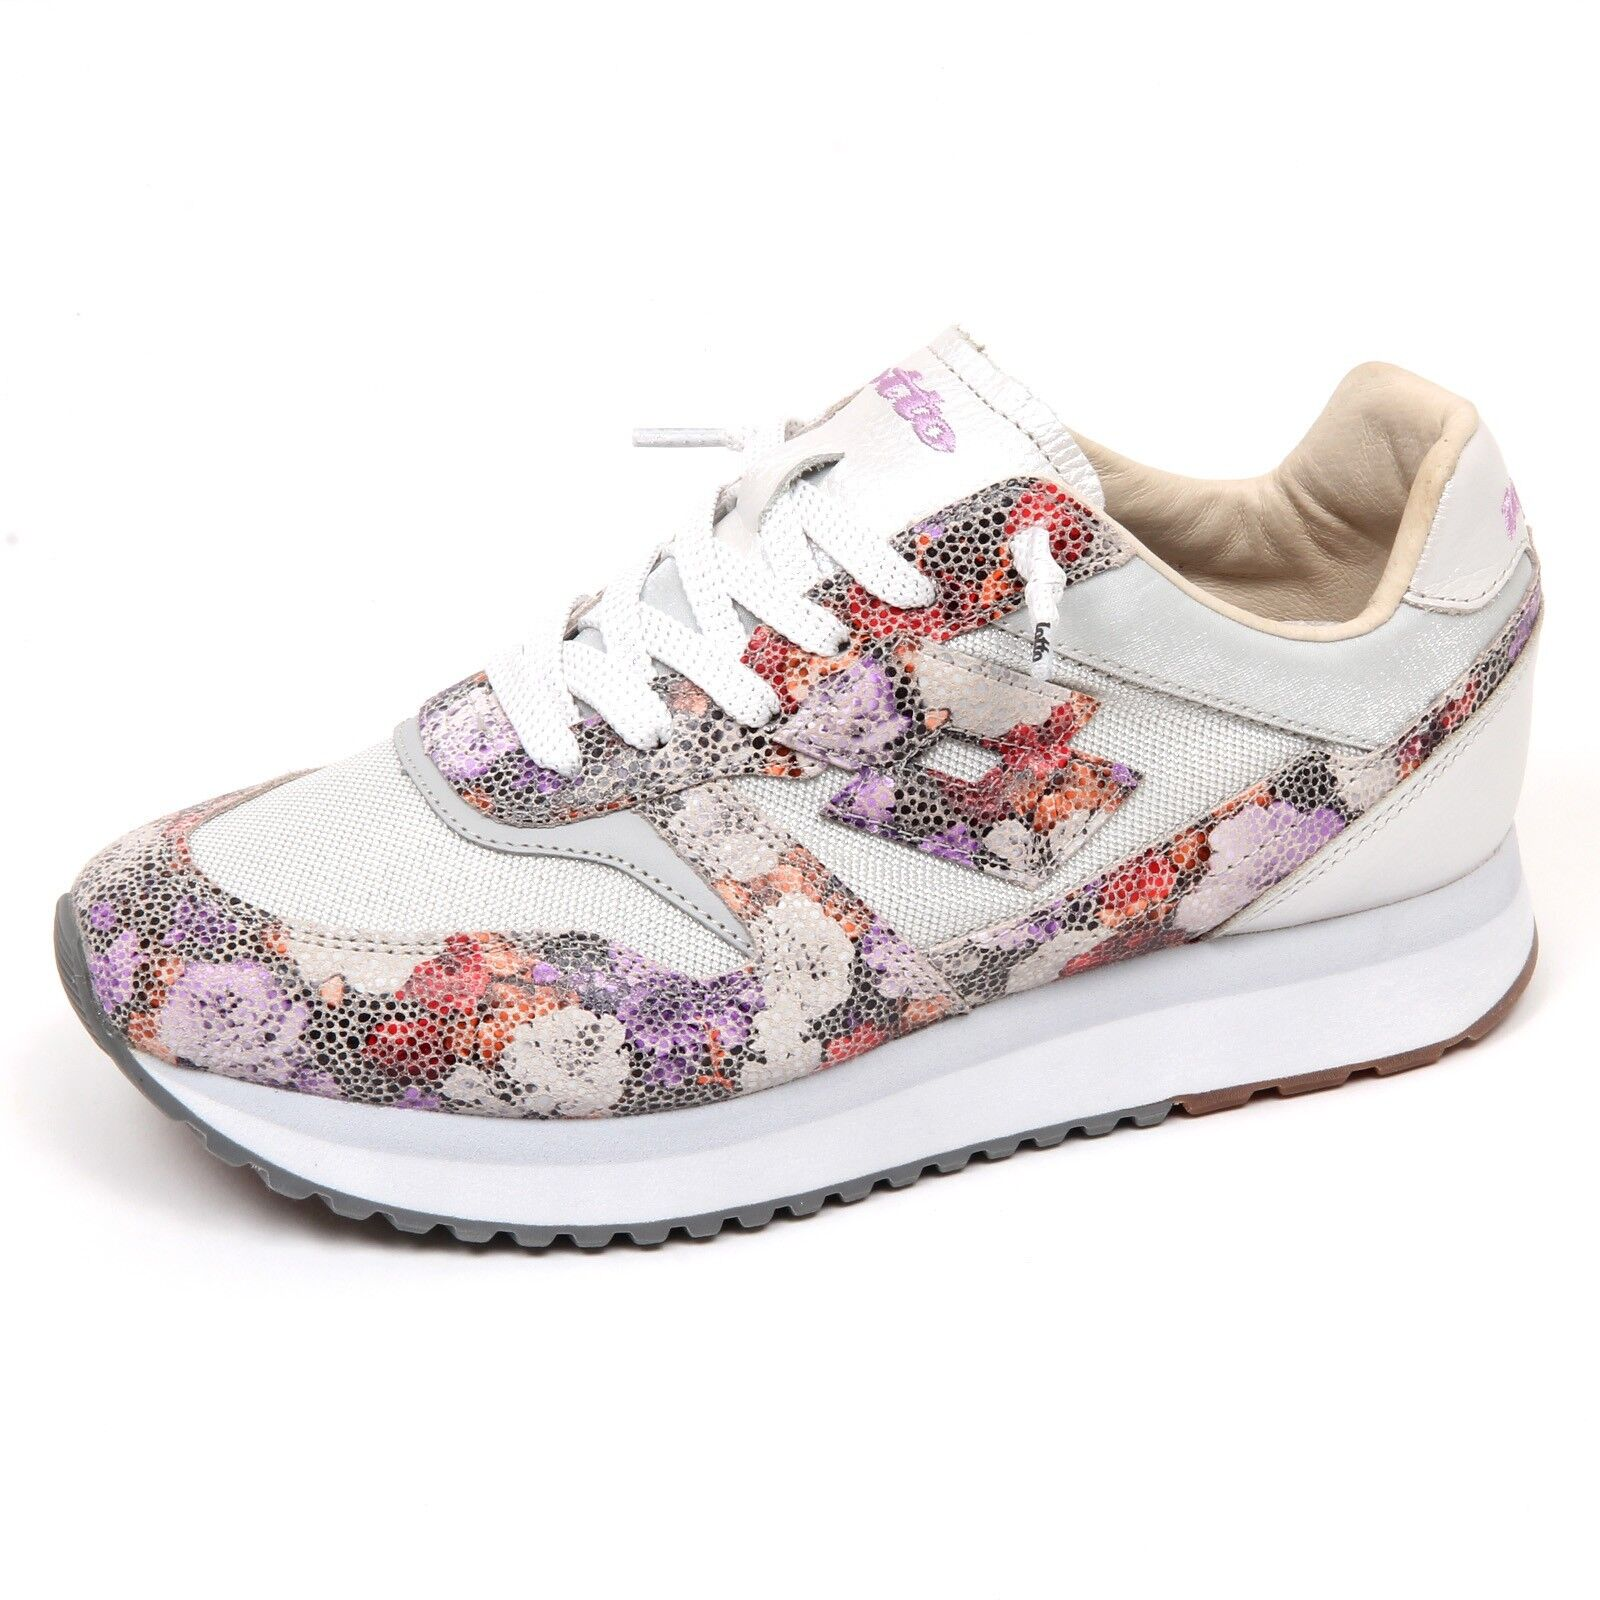 E9316 sneaker donna grey LOTTO LEGGENDA scarpe SLICE FLOWERS shoe woman